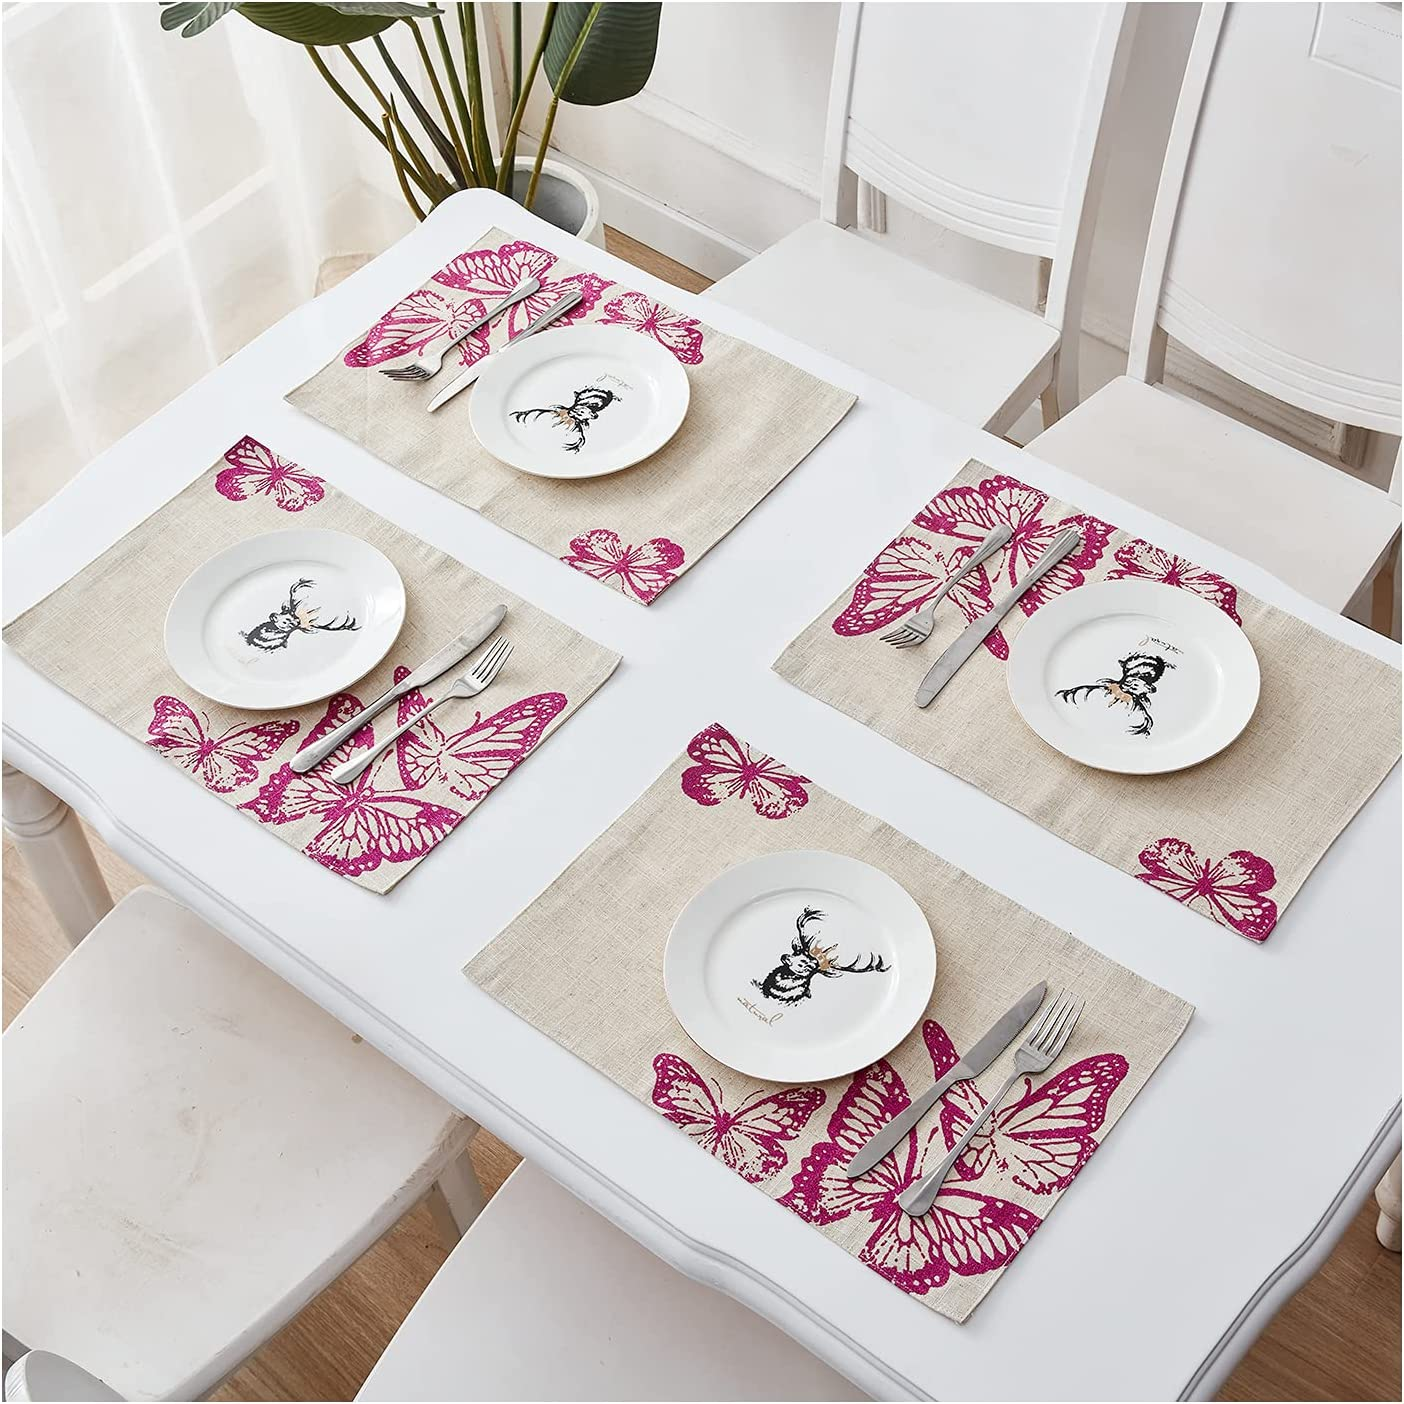 Snieut Rustic Placemats Set of 4, Vintage Style 2-Layer 18 x 12 Inch Table Mats with Pink Butterfly Pattern for Dining Table Decor, Holiday Party, Coffee Time, Outdoor and Indoor